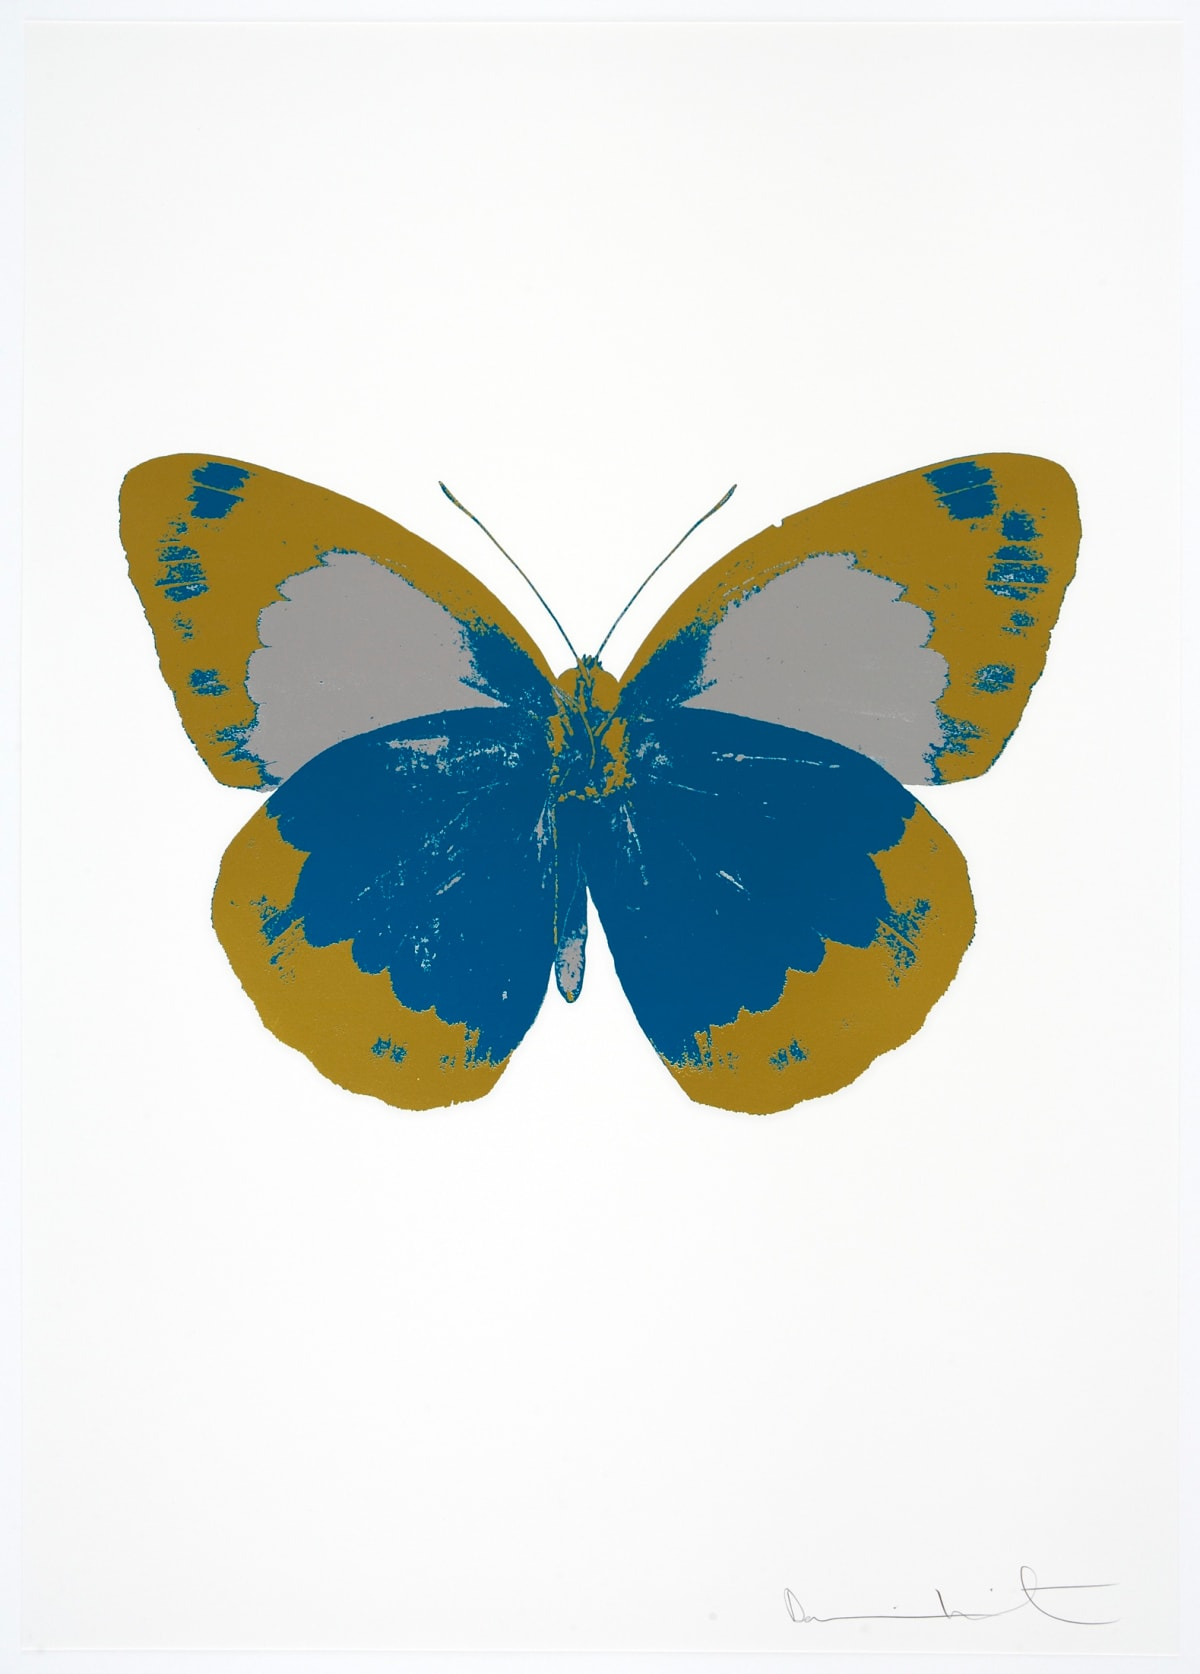 Damien Hirst The Souls II - Turquoise/Oriental Gold/ Silver Gloss, 2010 3 colour foil block on 300gsm Arches 88 archival paper. Signed and numbered. Published by Paul Stolper and Other Criteria 72 x 51cm OC7869 / 658-52 Edition of 15